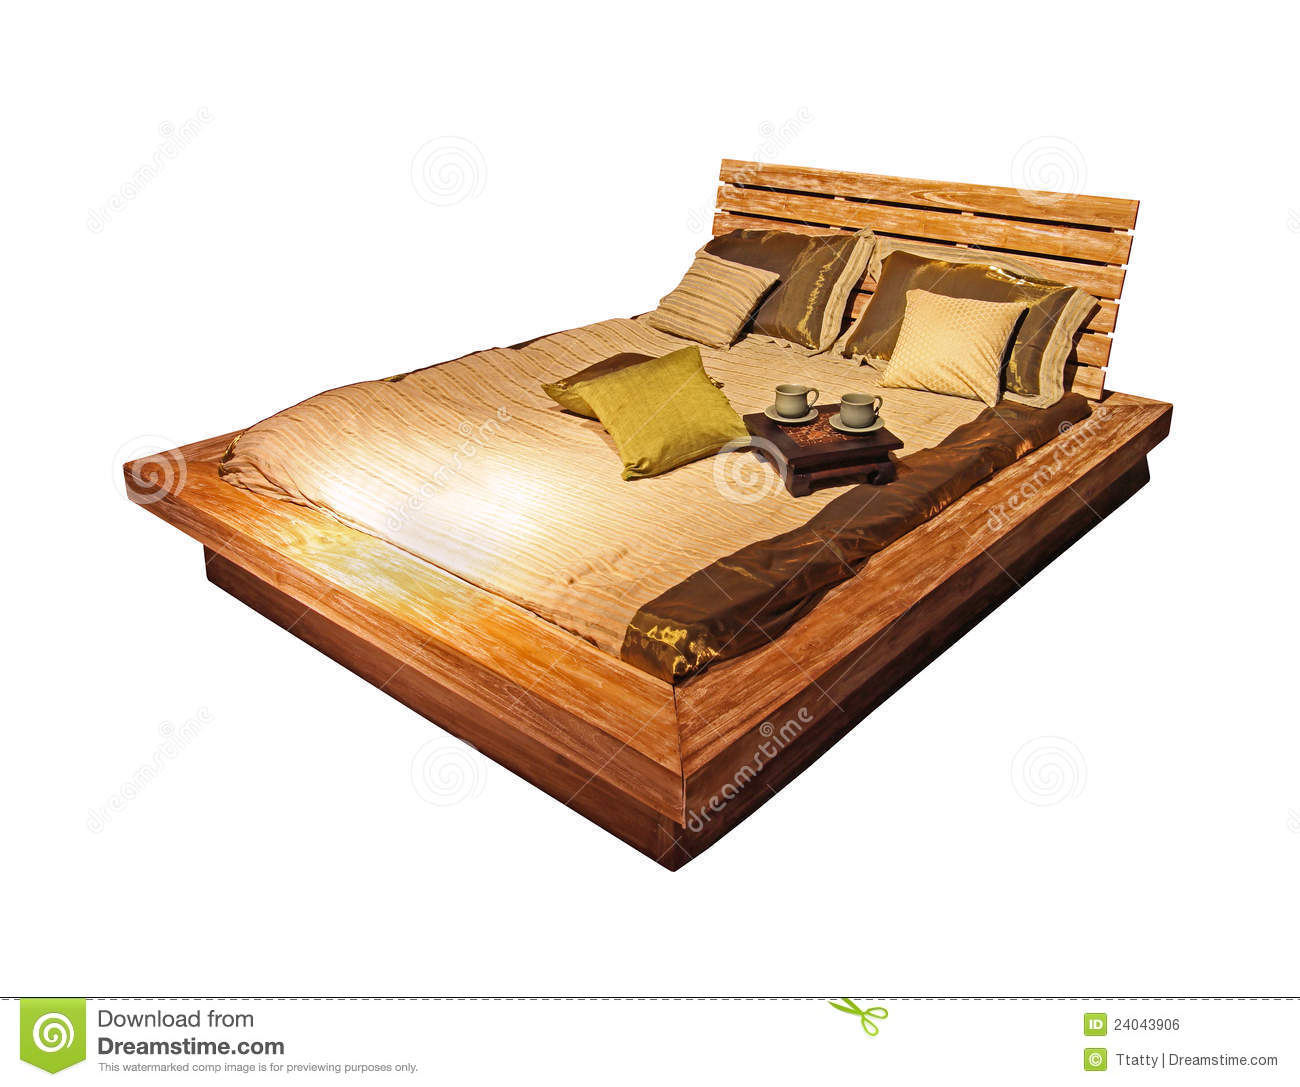 Very Impressive portraiture of Wooden Bed Isolated Royalty Free Stock Image Image: 24043906 with #AD751E color and 1300x1087 pixels